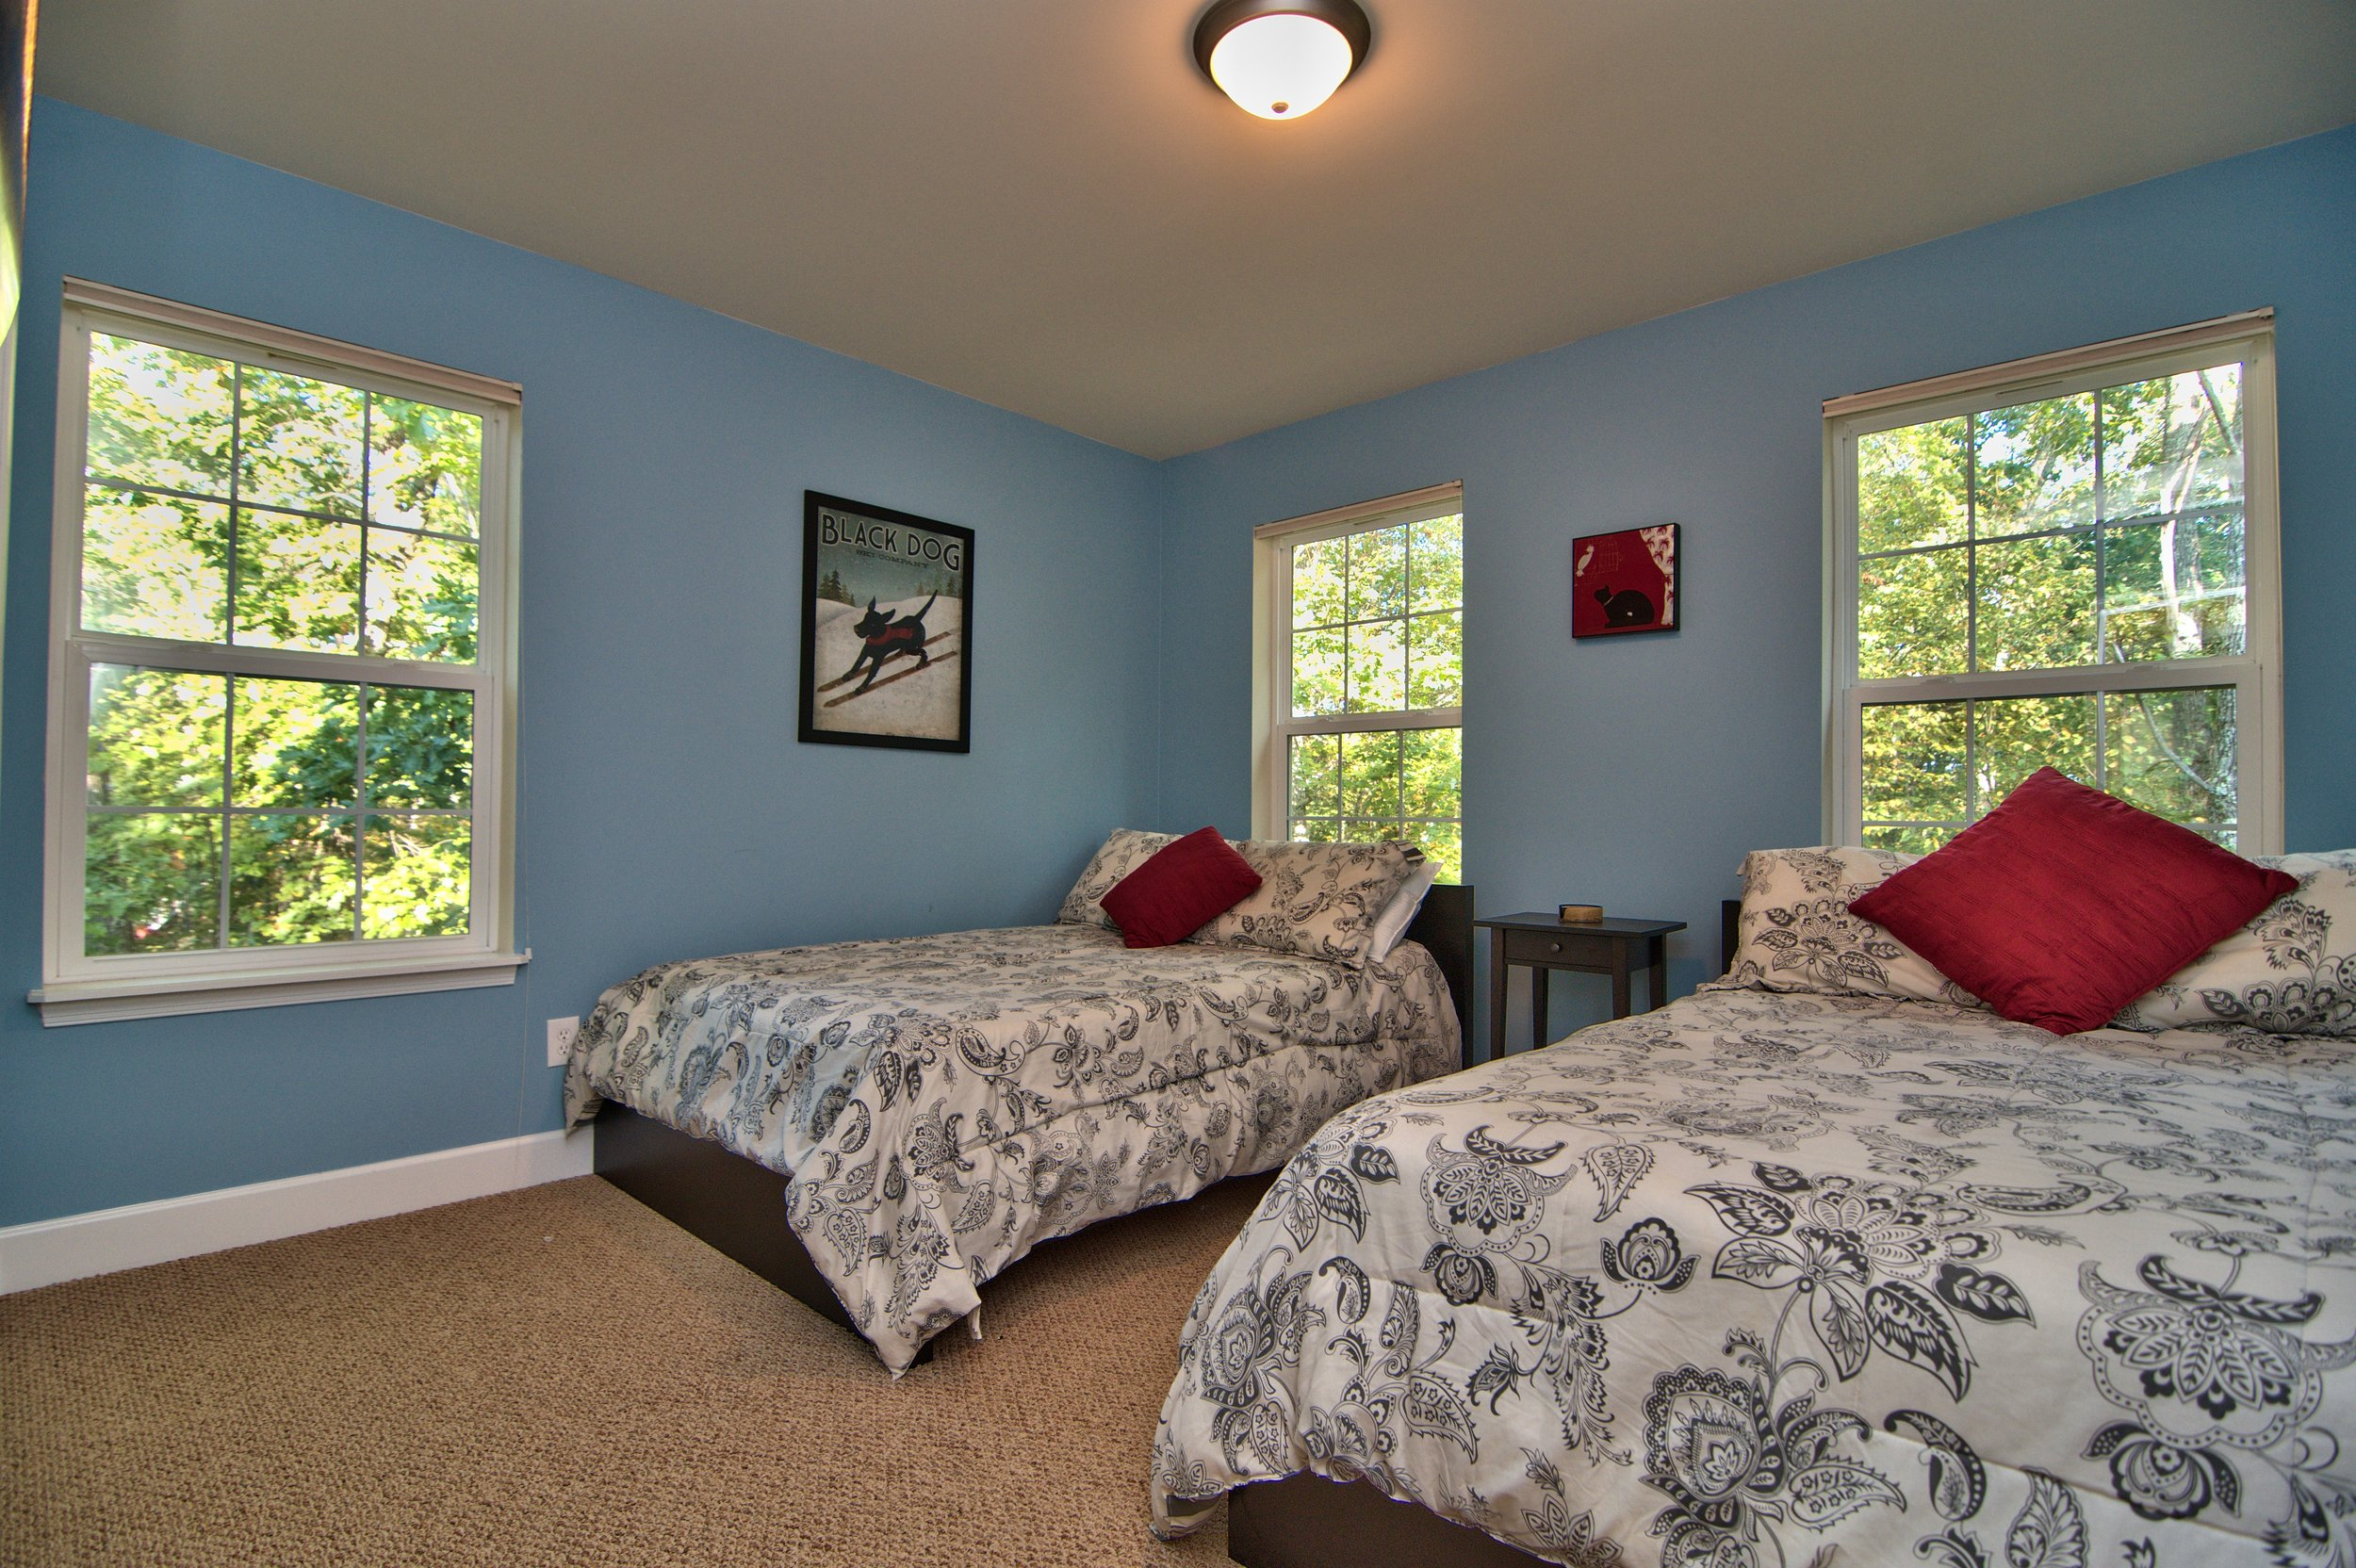 Bedroom 2 View 1.jpg